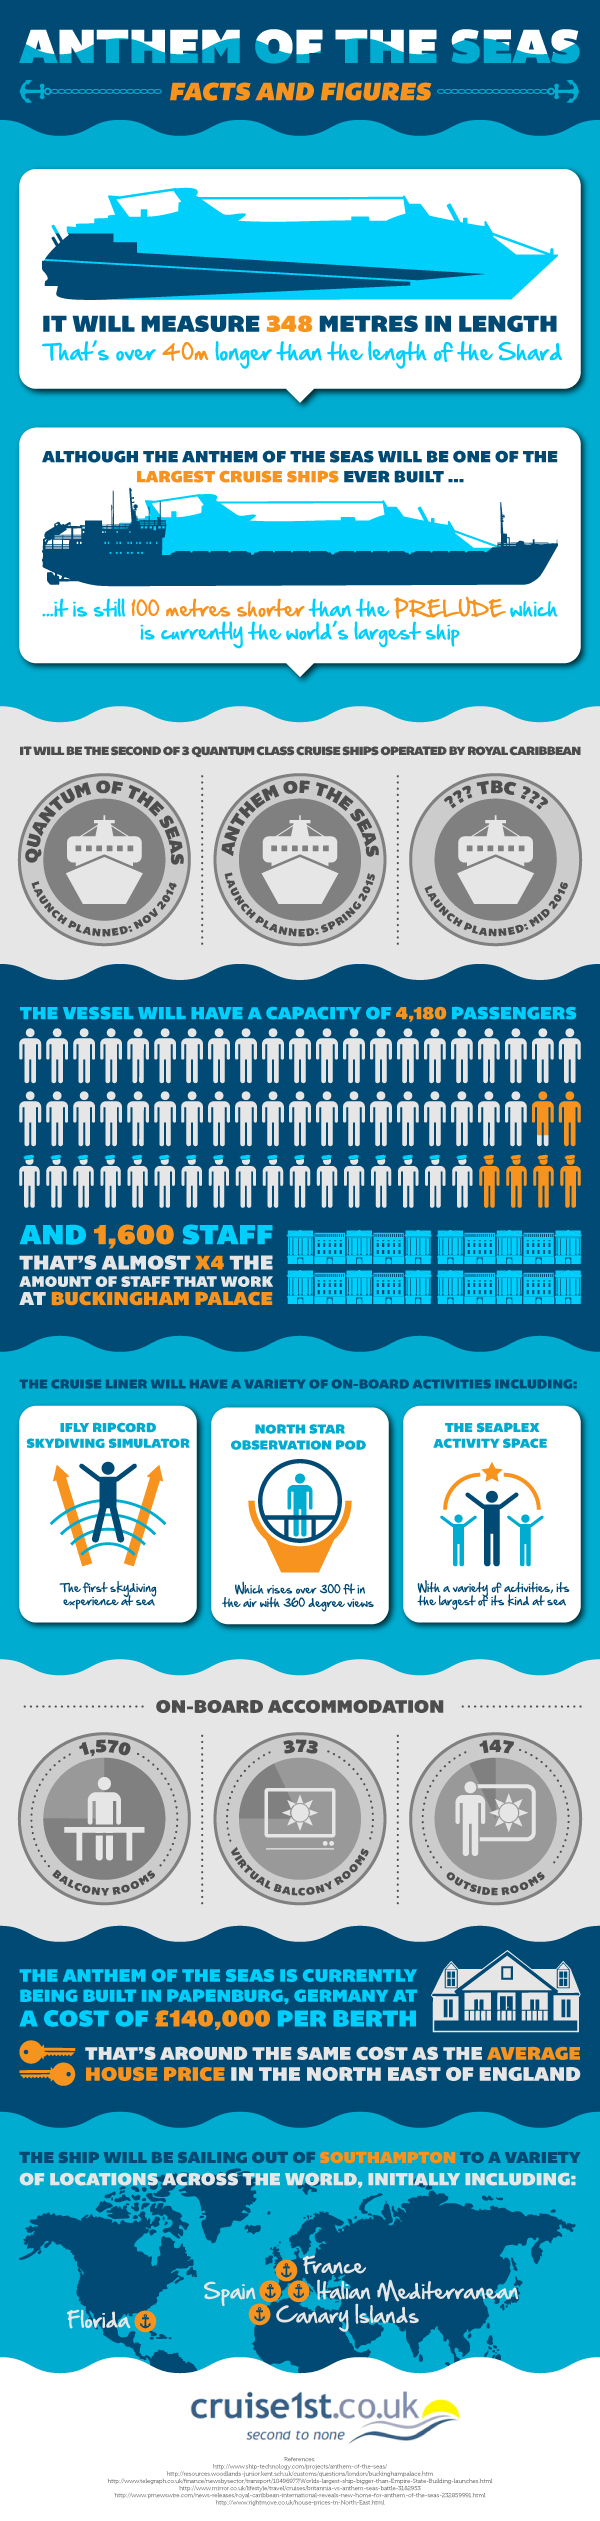 Anthem Of The Seas Facts And Figures | CruiseMiss Cruise Blog